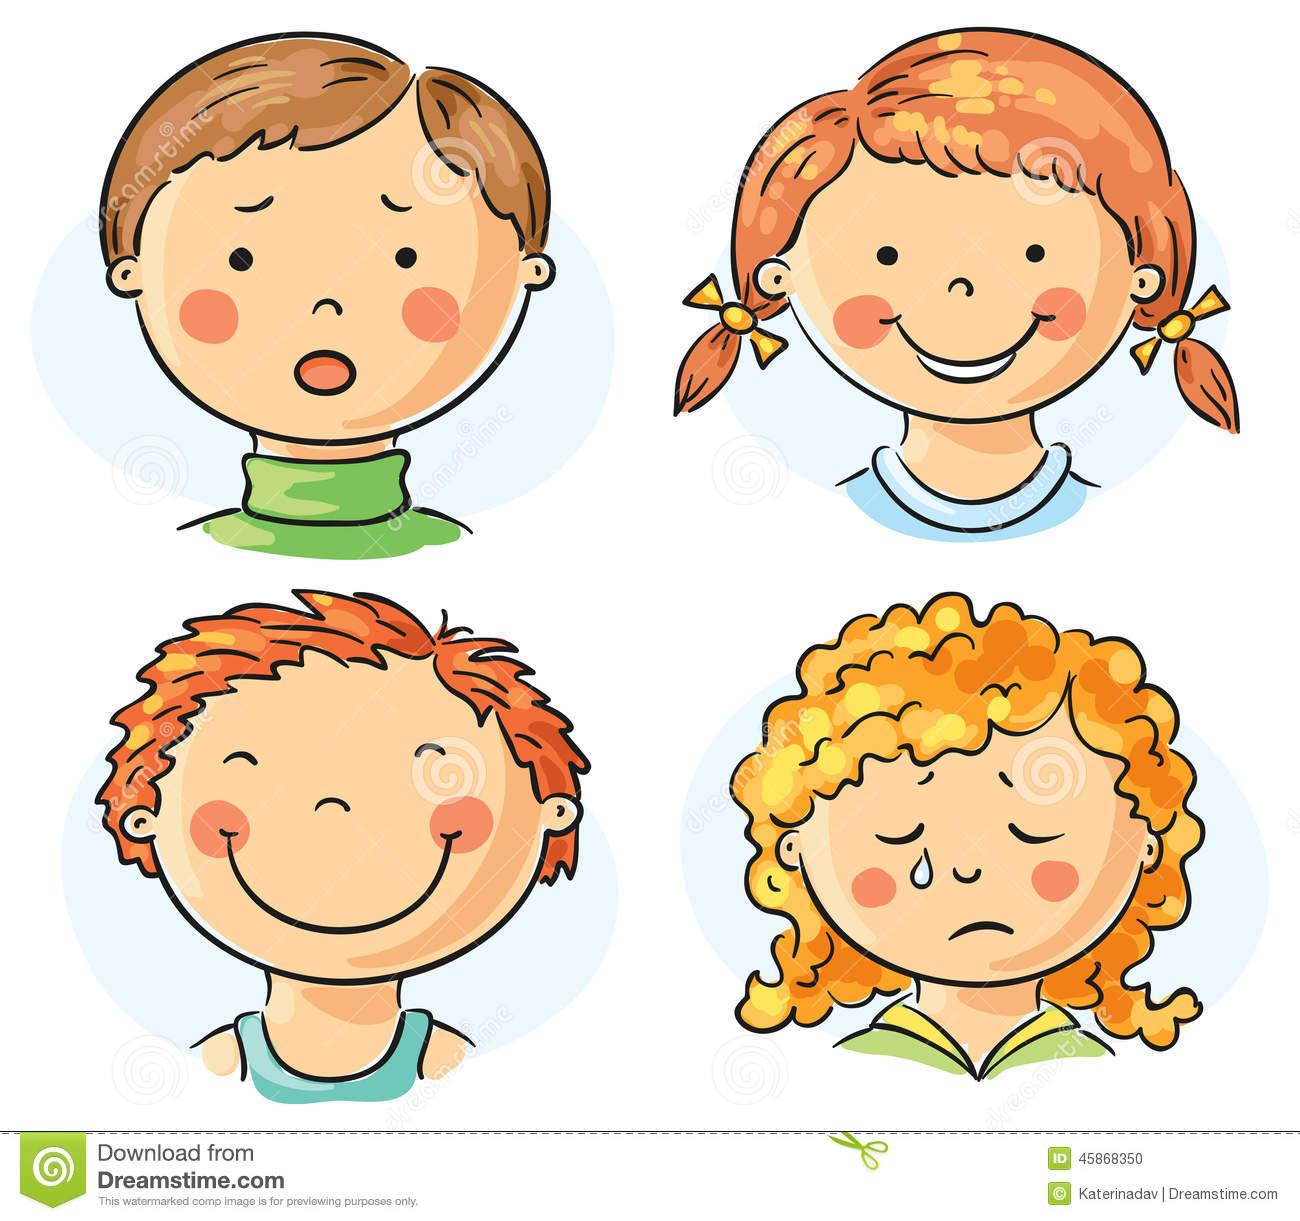 Kids Faces Stock Vector - Image: 45868350